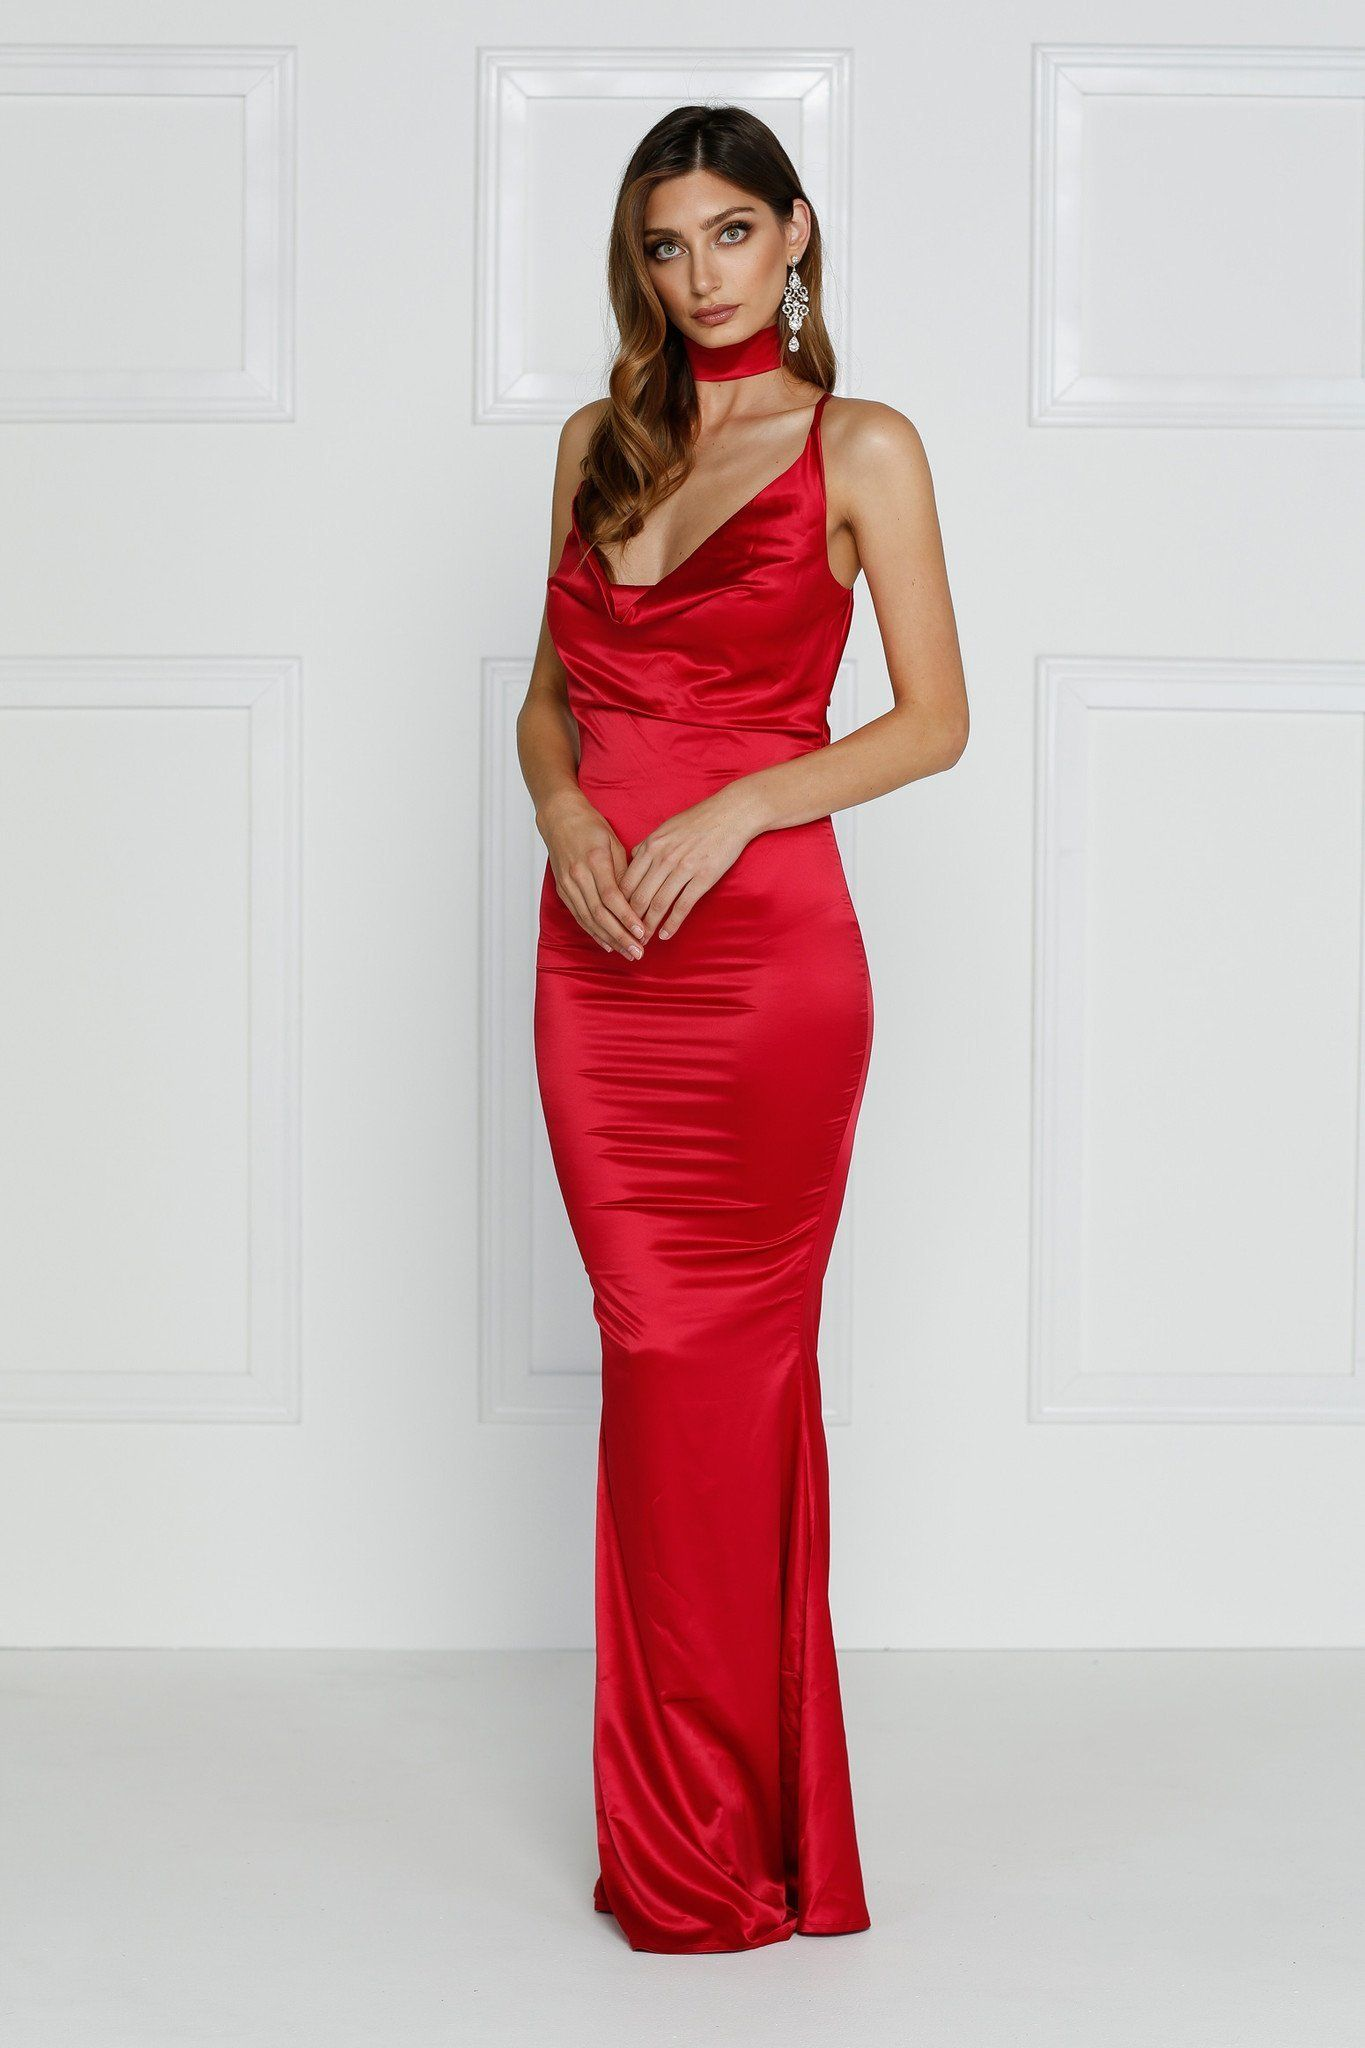 Crisantemi cherry red gowns satin dress long satin gown